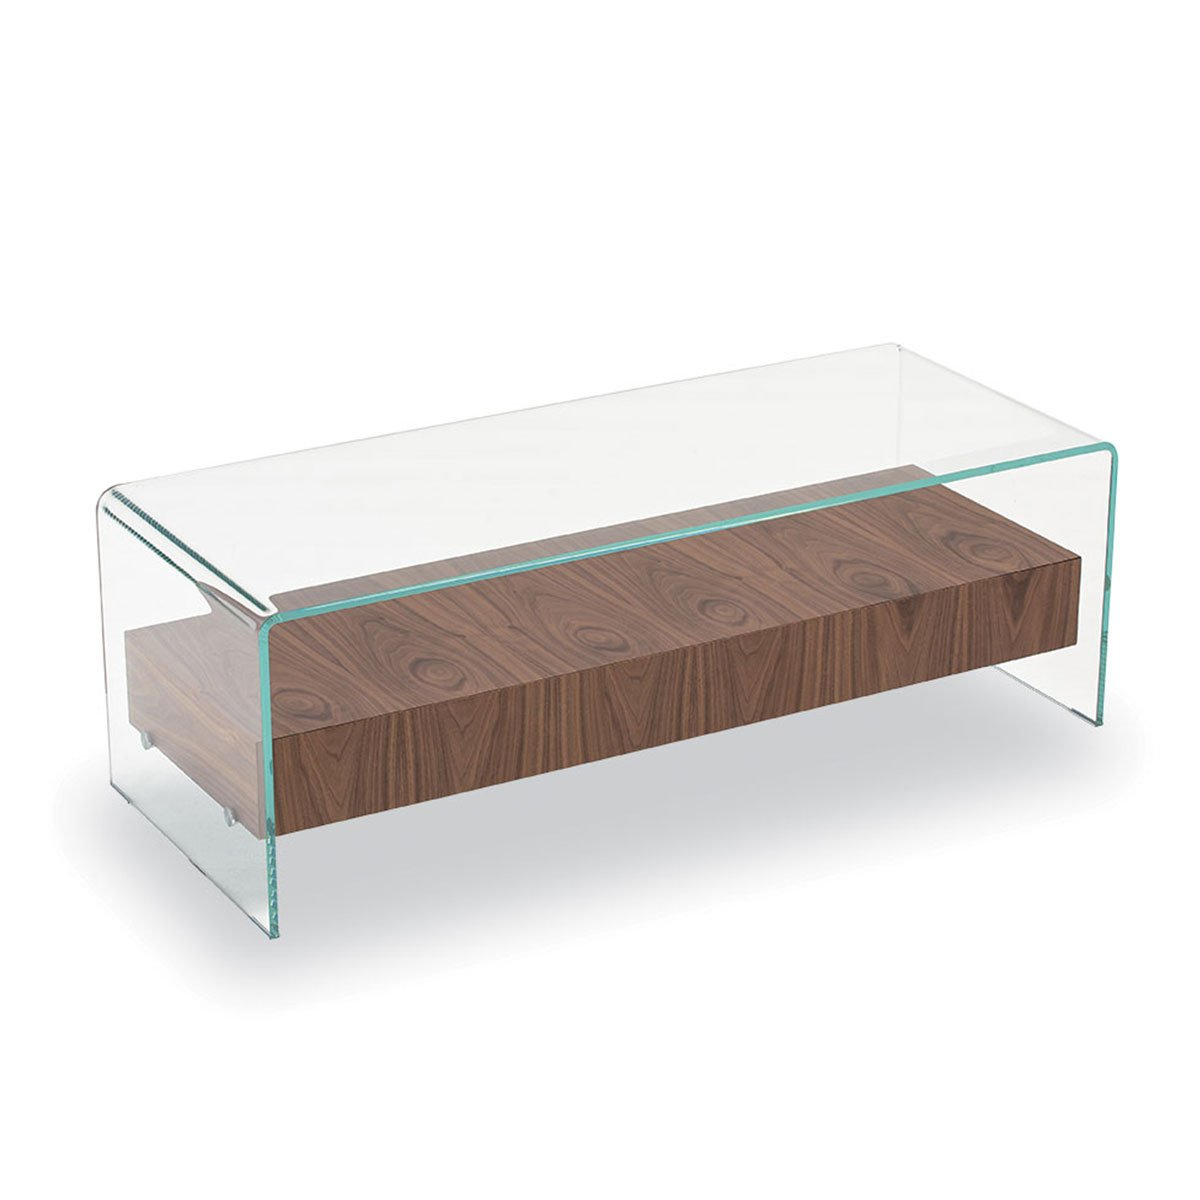 Bridge Glass Coffee Table With Wooden Drawer Klarity Glass Furniture